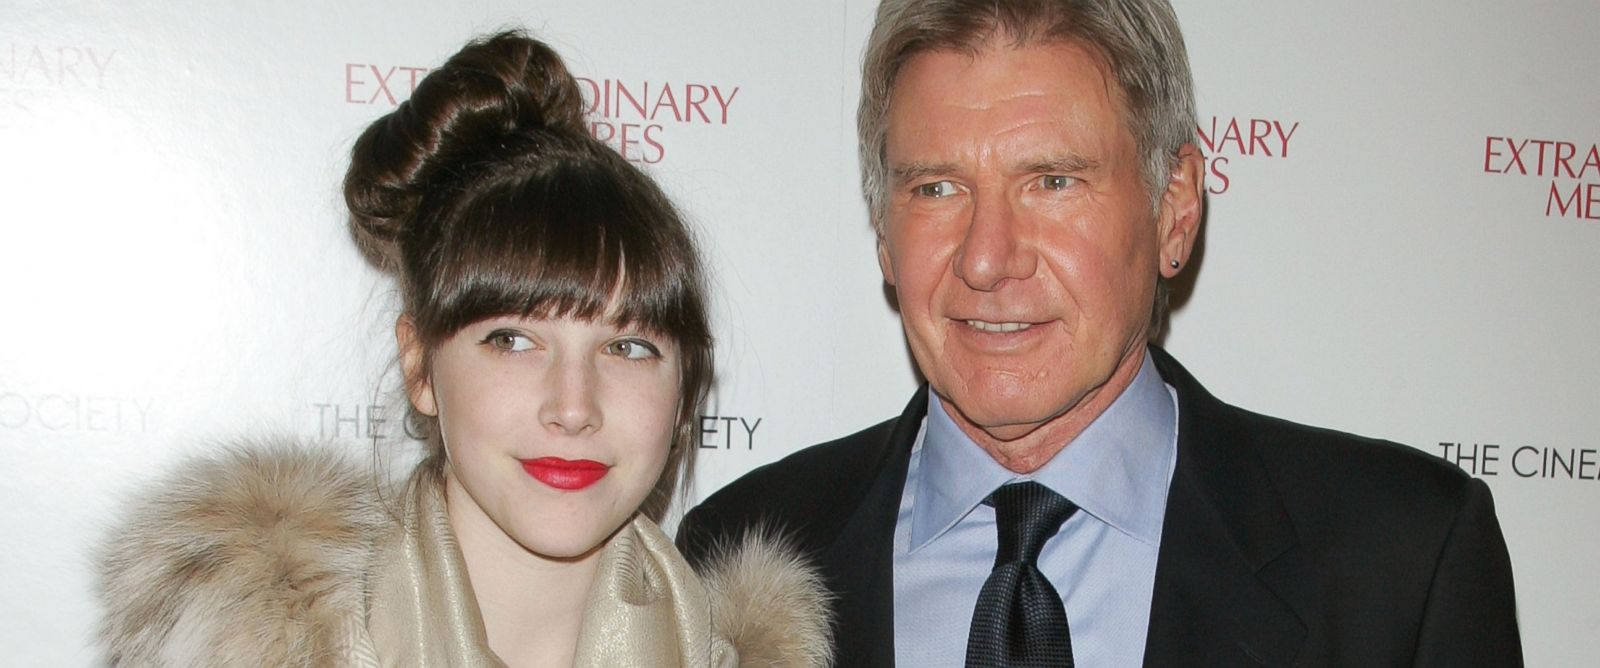 """PHOTO: Georgia Ford and actor Harrison Ford attend the Cinema Society with John & Aileen Crowley screening of """"Extraordinary Measures"""" at the School of Visual Arts Theater, Jan. 21, 2010 in New York."""